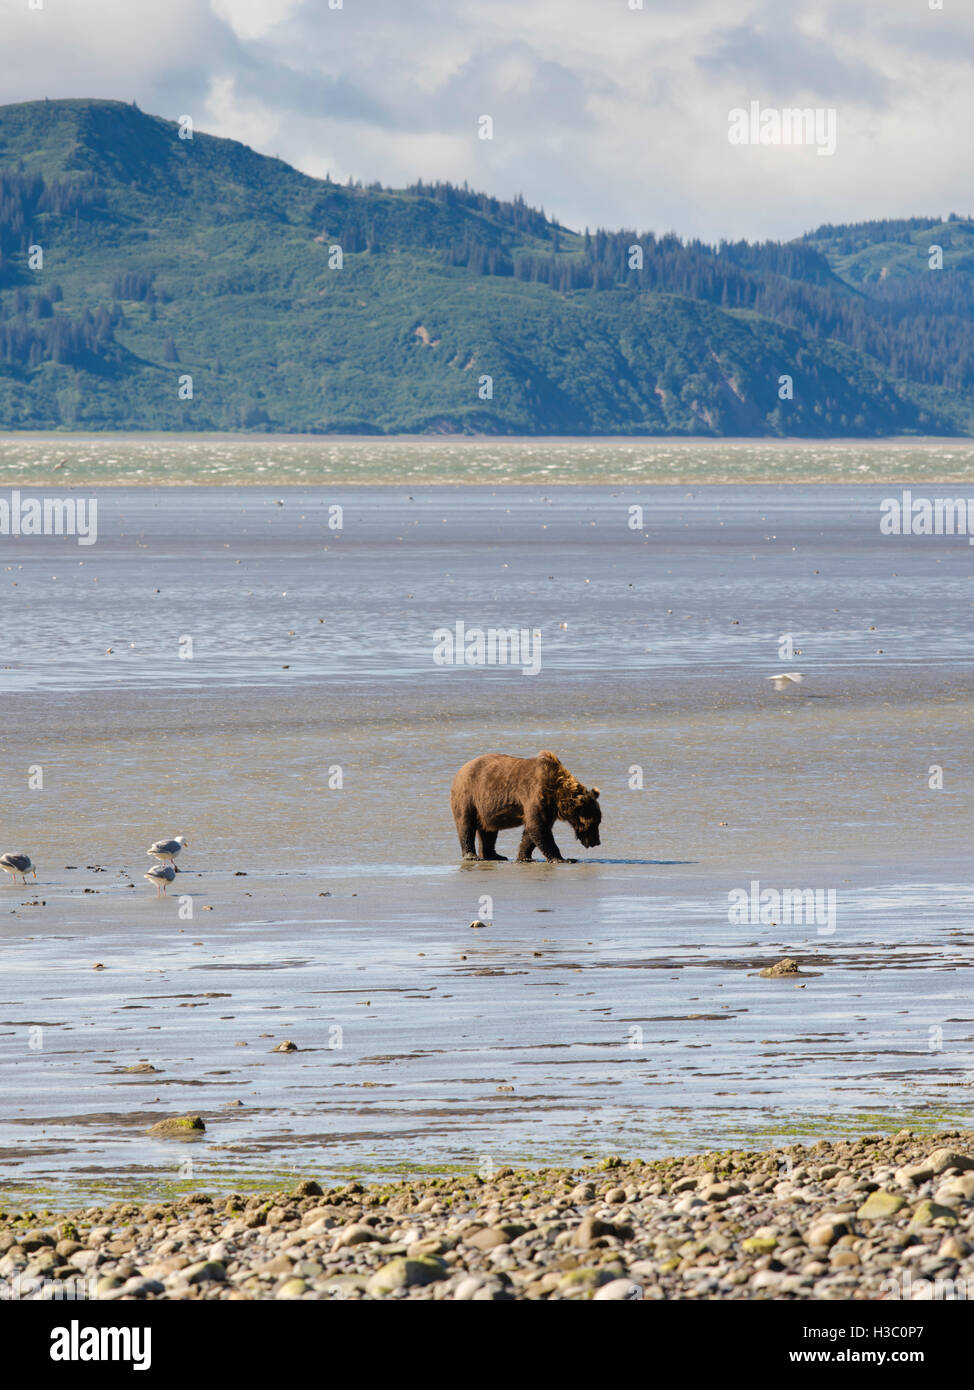 An Alaska coastal brown bear digs for clams in the tidal flat of Chinitna Bay, Lake Clark National Park, Alaska. Stock Photo